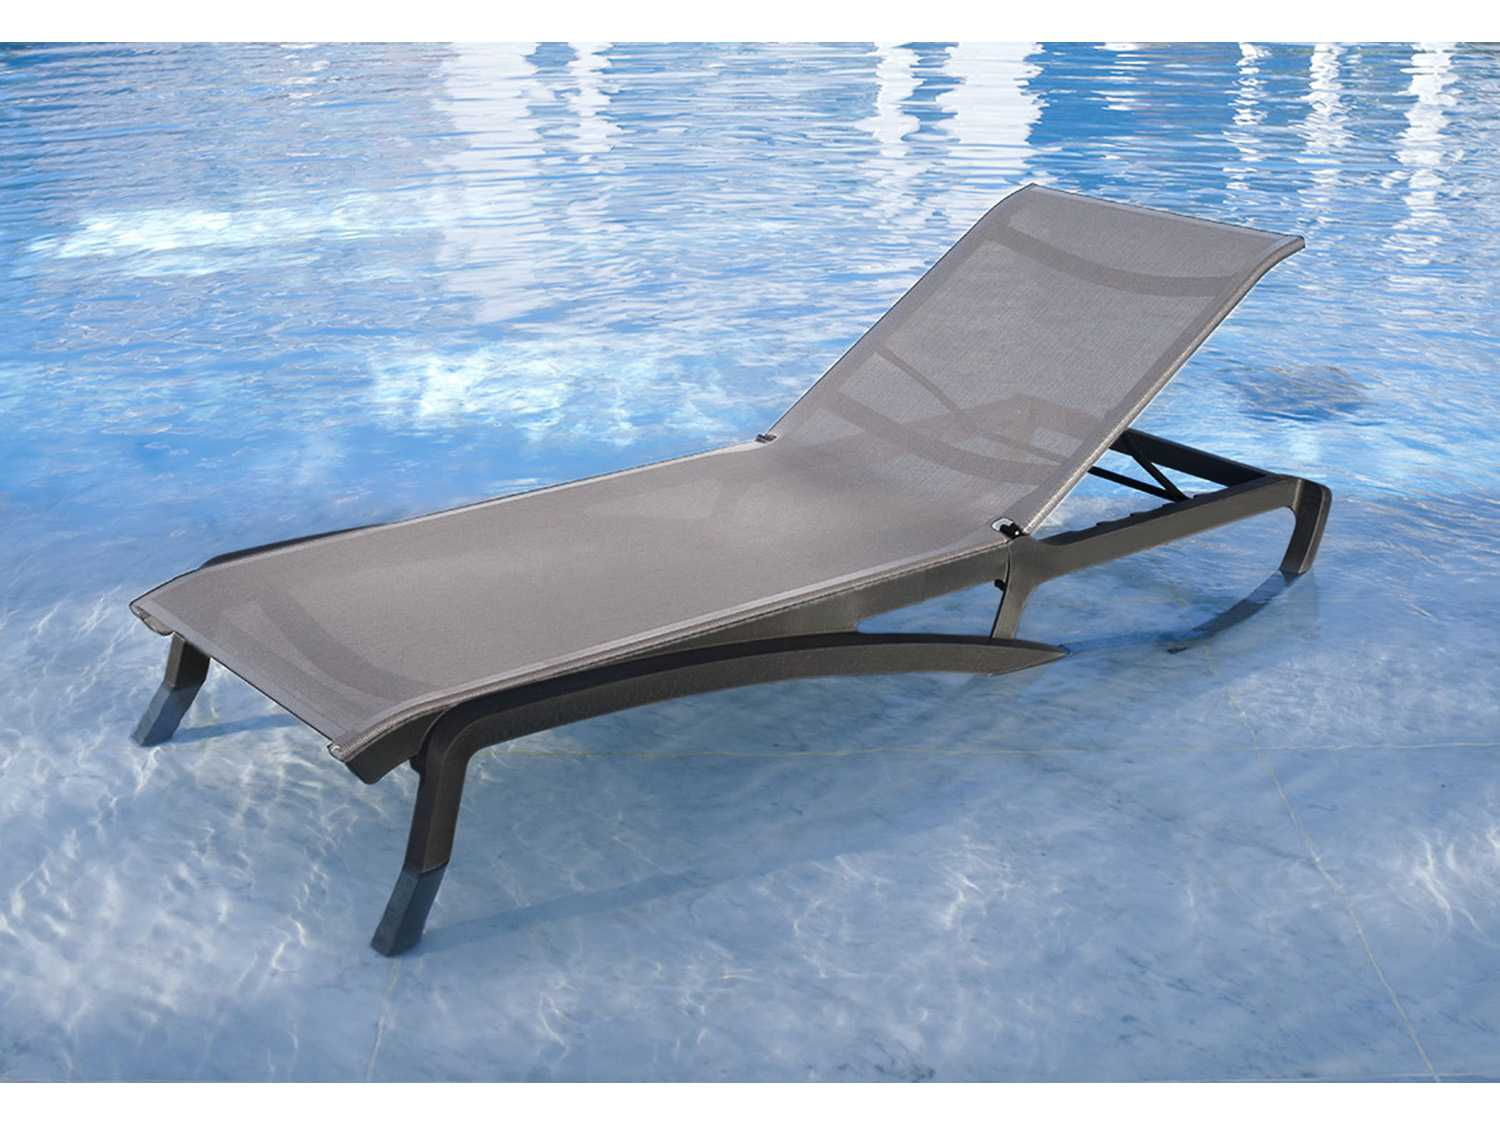 Grosfillex sunset chaise lounge sold in 2 us636288 - Grosfillex chaise longue ...